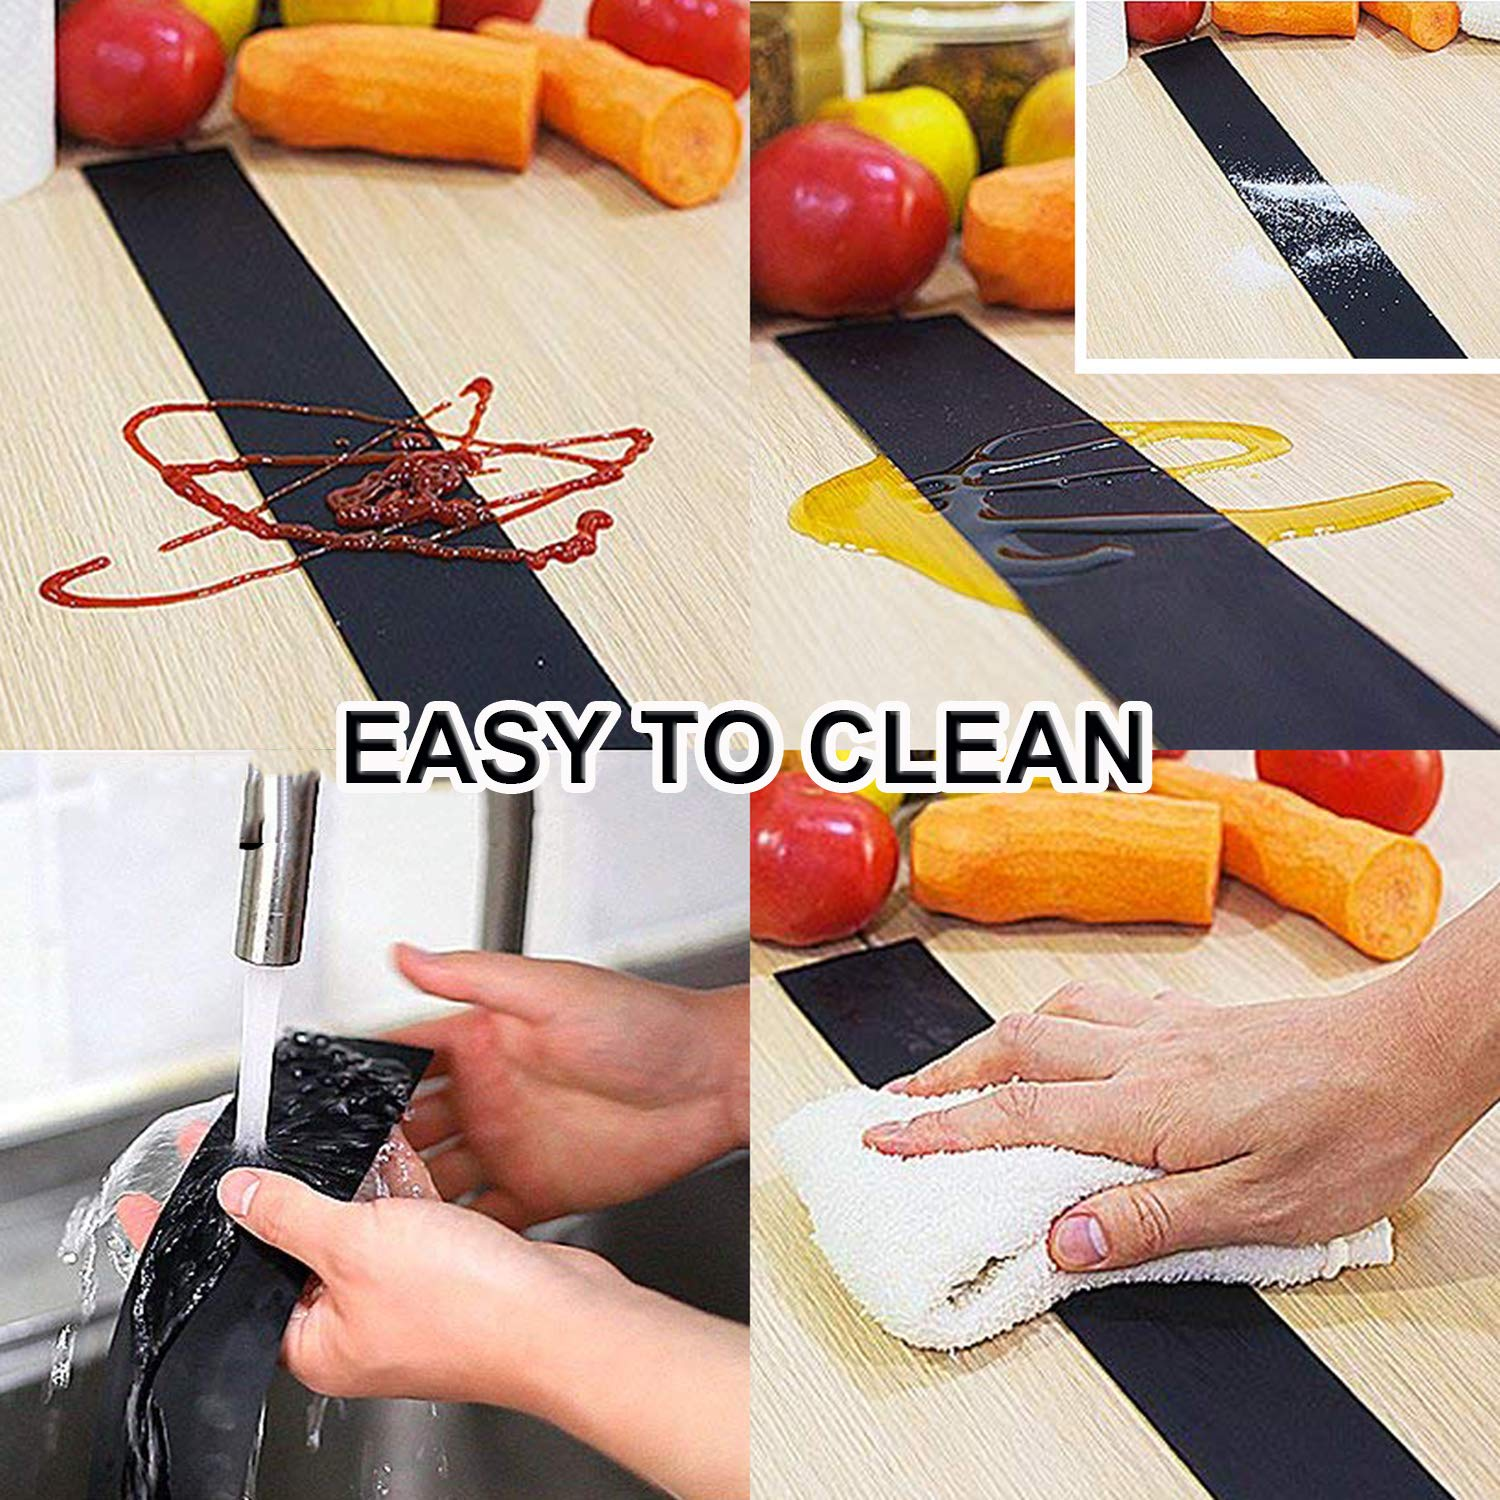 HTB11xgWbBiE3KVjSZFMq6zQhVXaN - Kitchen Silicone Stove Counter Gap Cover Set of 2 Heat Resistant Stove Gap Fillers Oil and Grease Proof Sealing Strip Stove-top